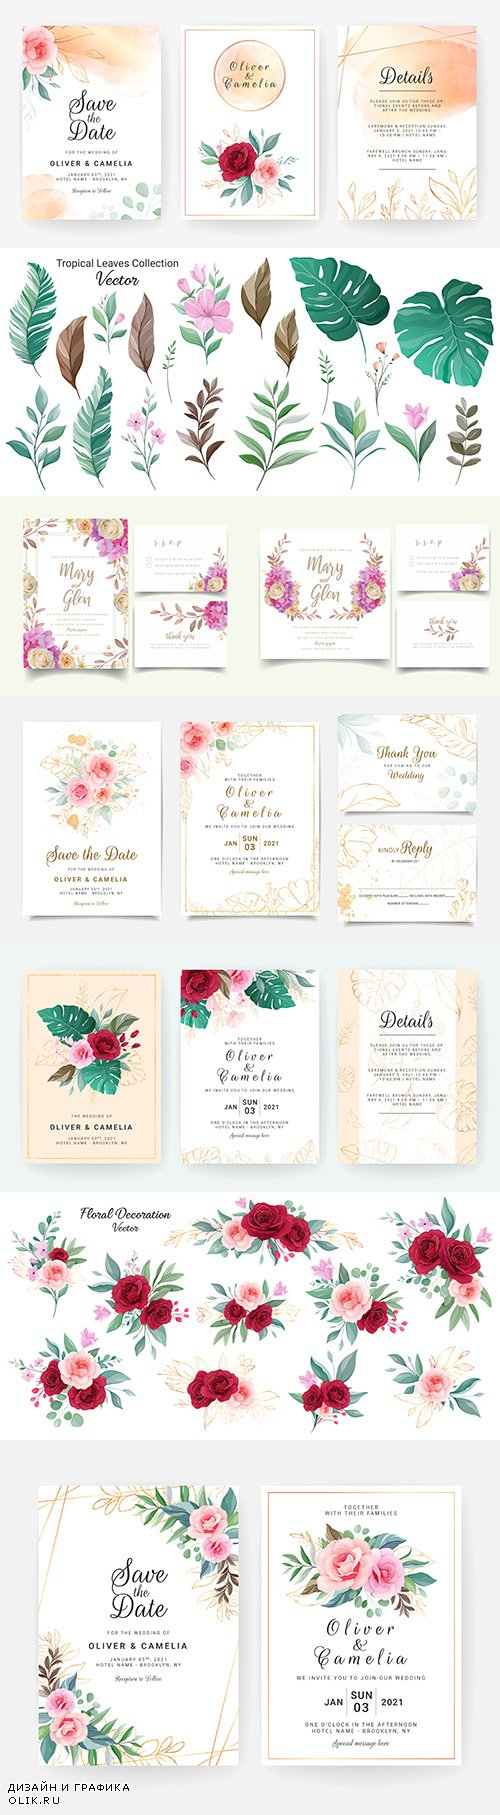 Wedding floral watercolor decorative invitations 22